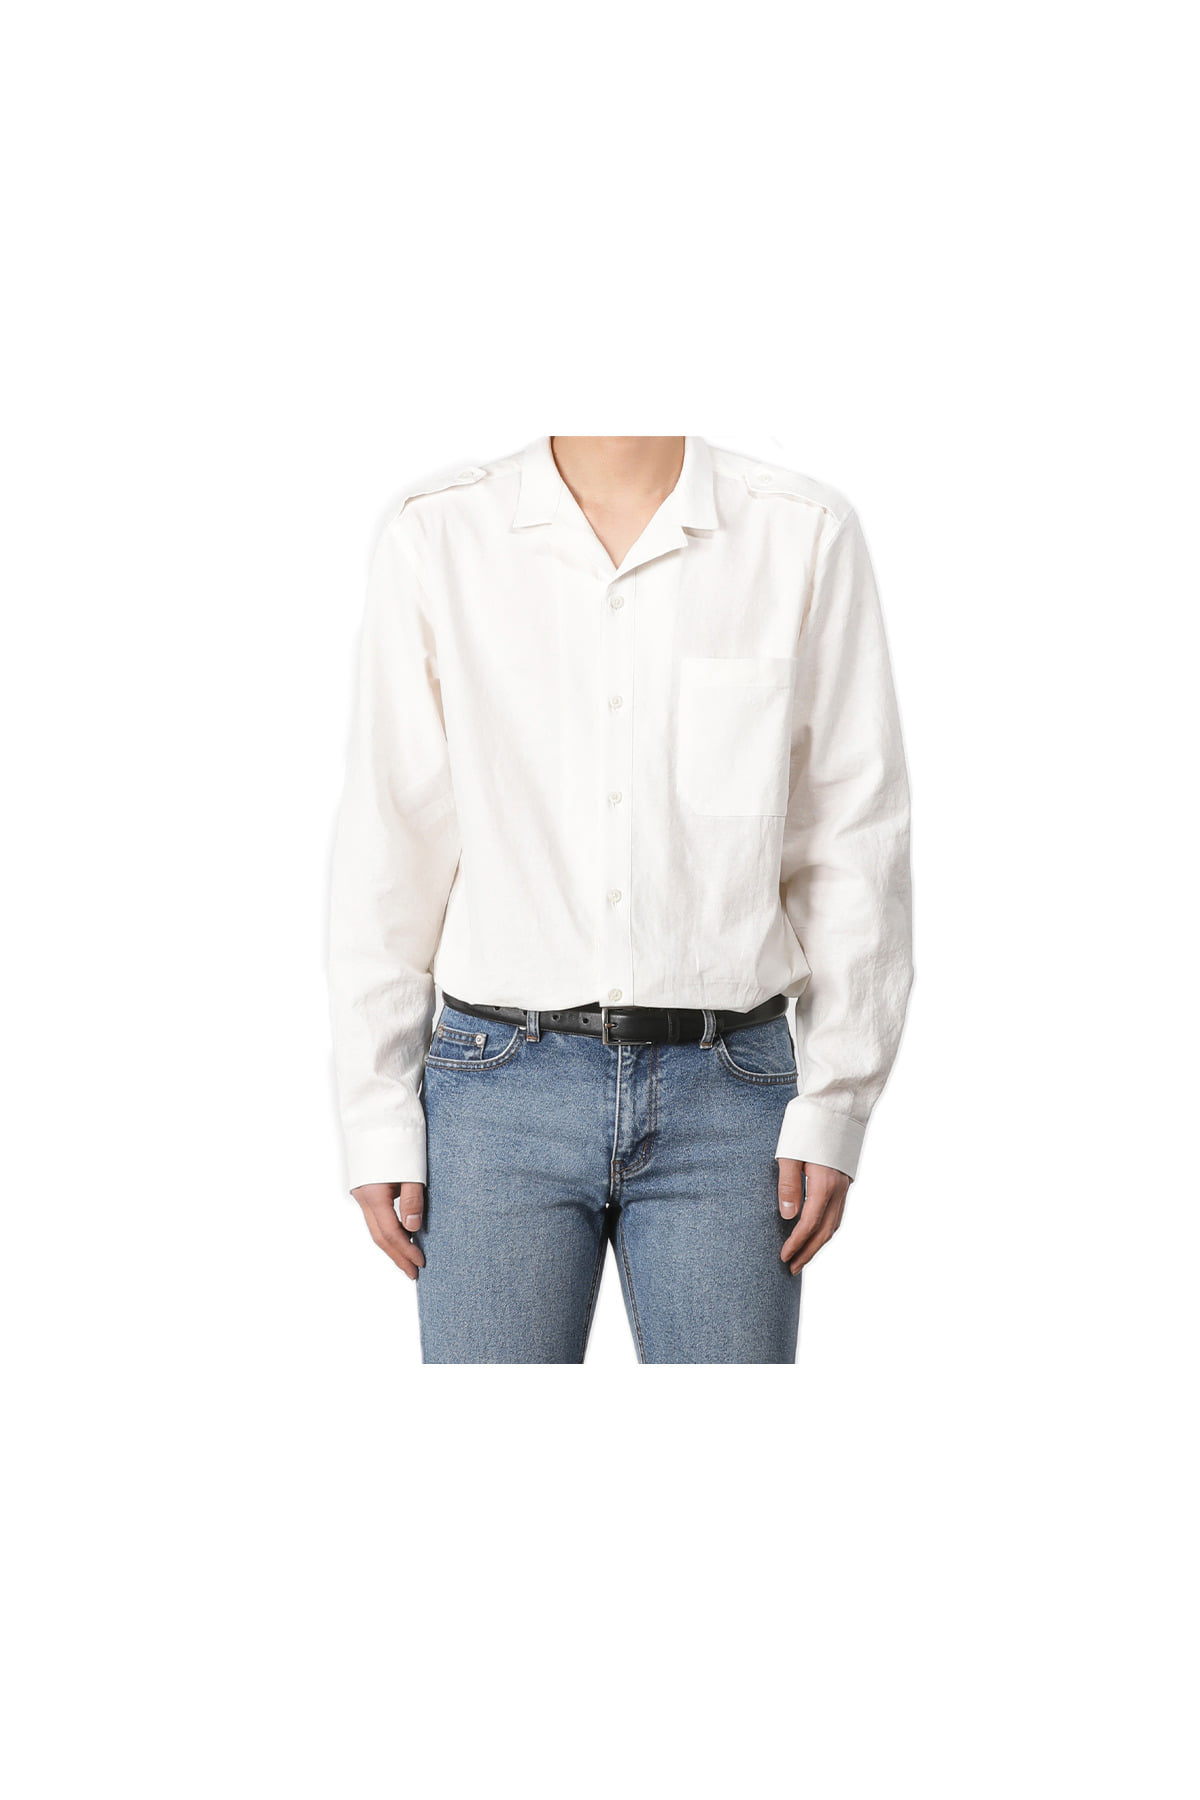 Nakama open collar shirt (white) #jp42